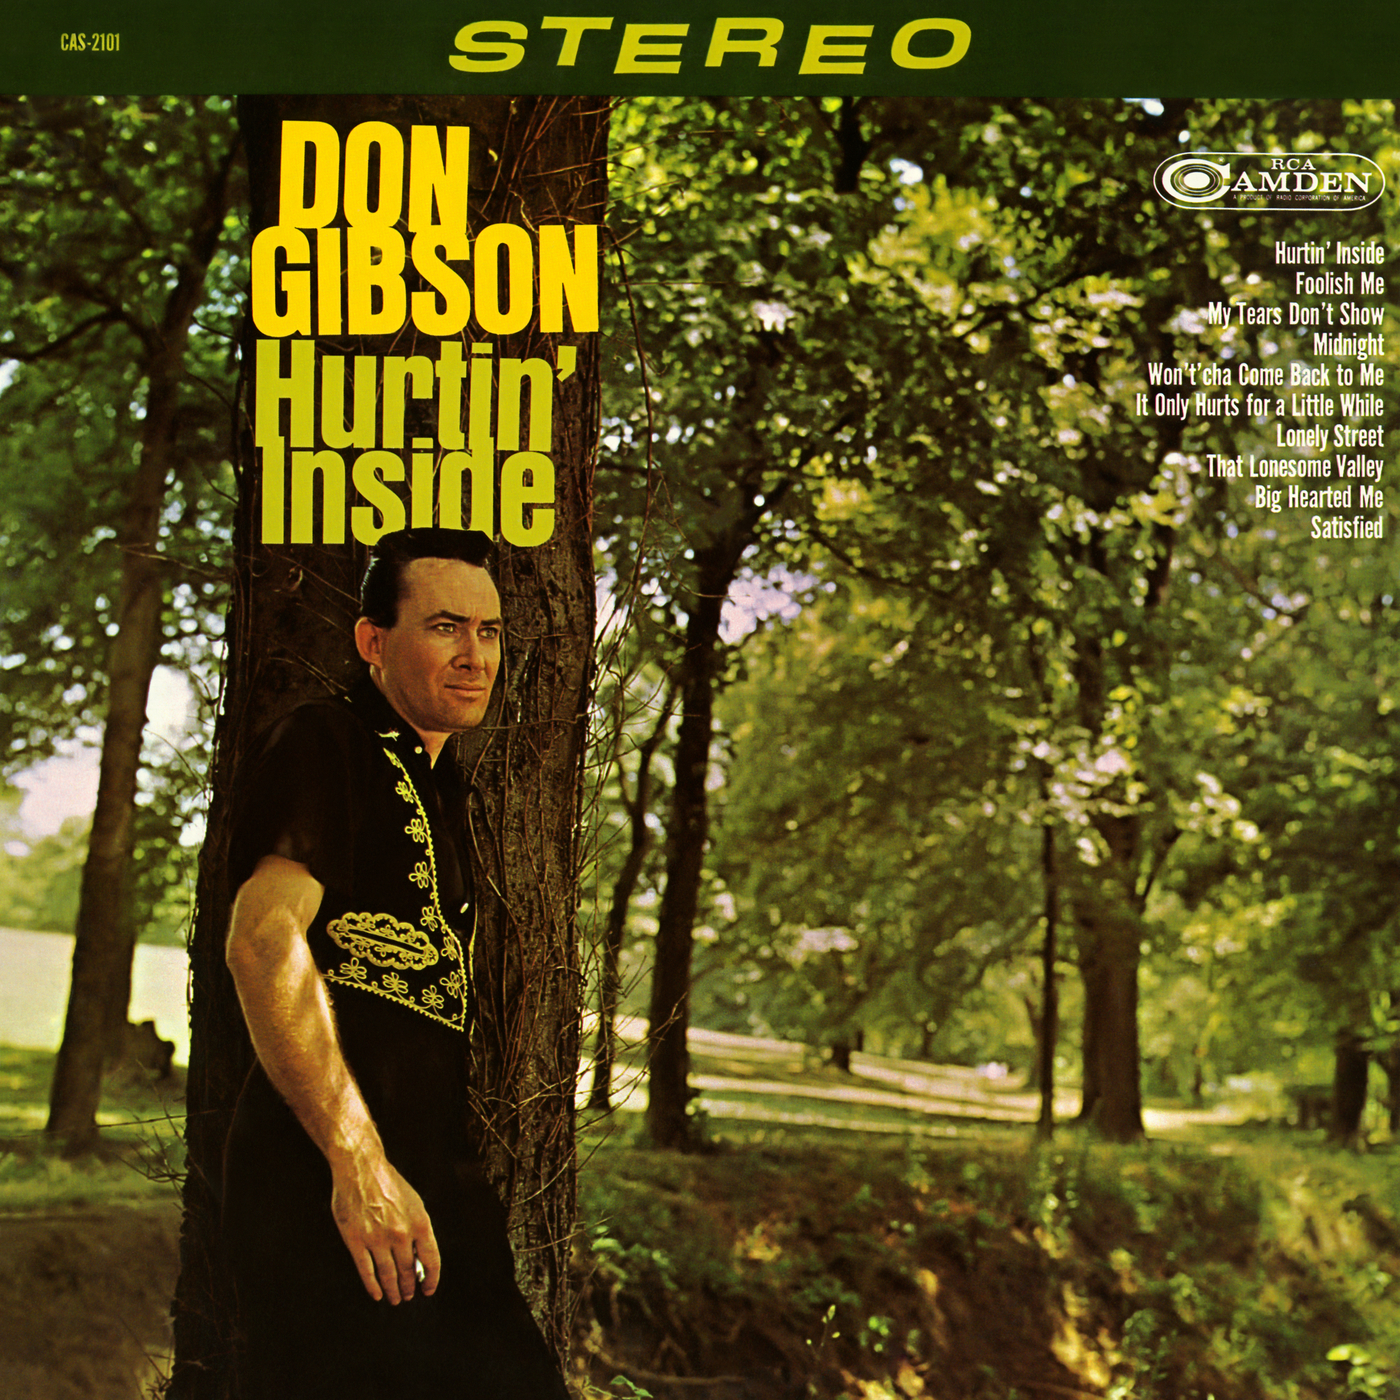 Hurtin' Inside - Don Gibson